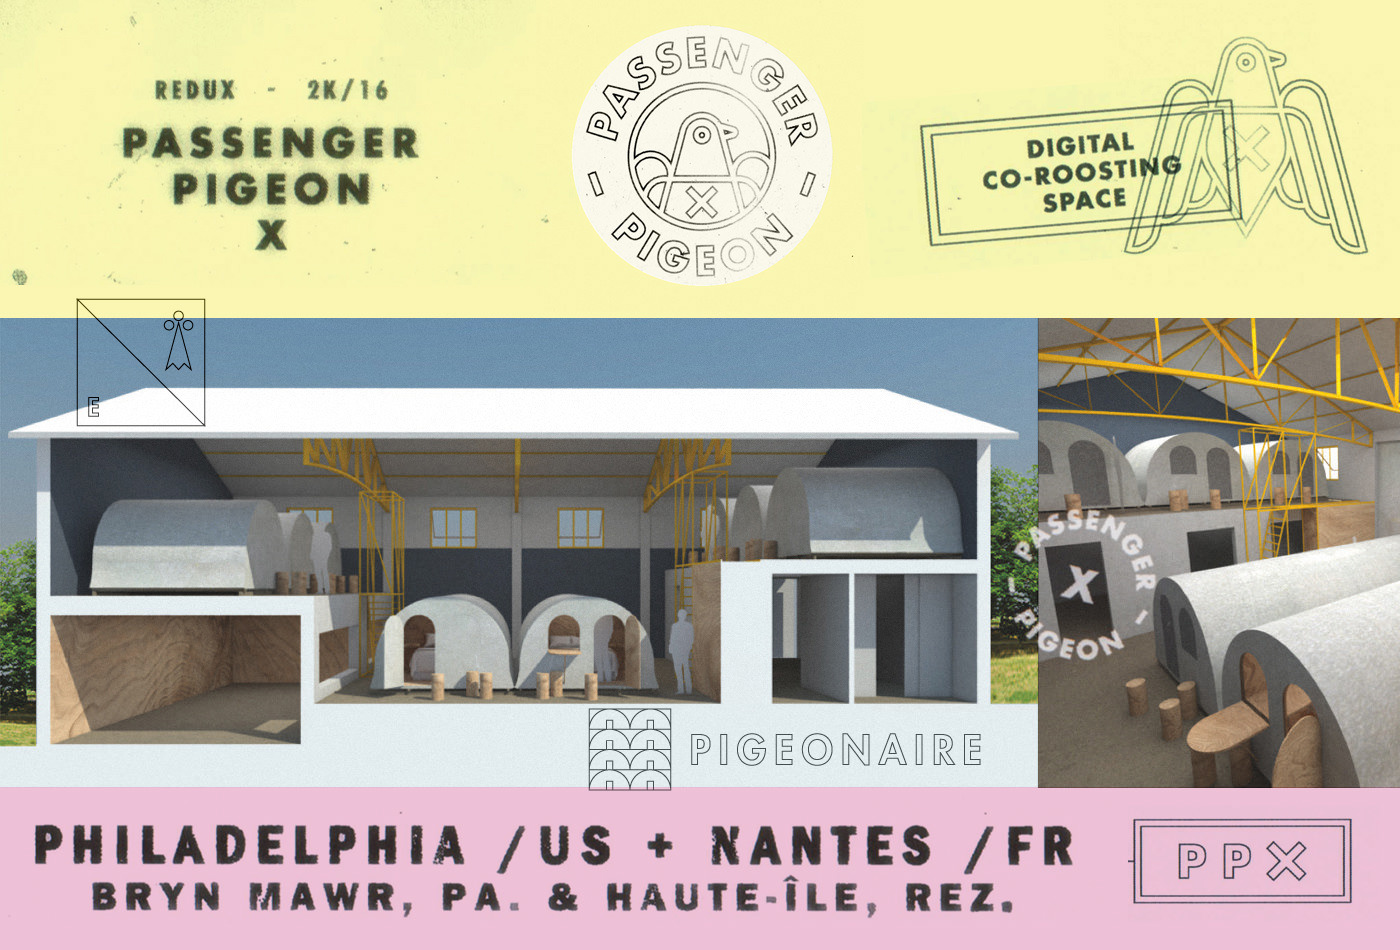 pigeonaire-ppx-passenger-pigeon-x-ppx-donofrio-vacaliebres-nantes-philadelphia-co-working-space